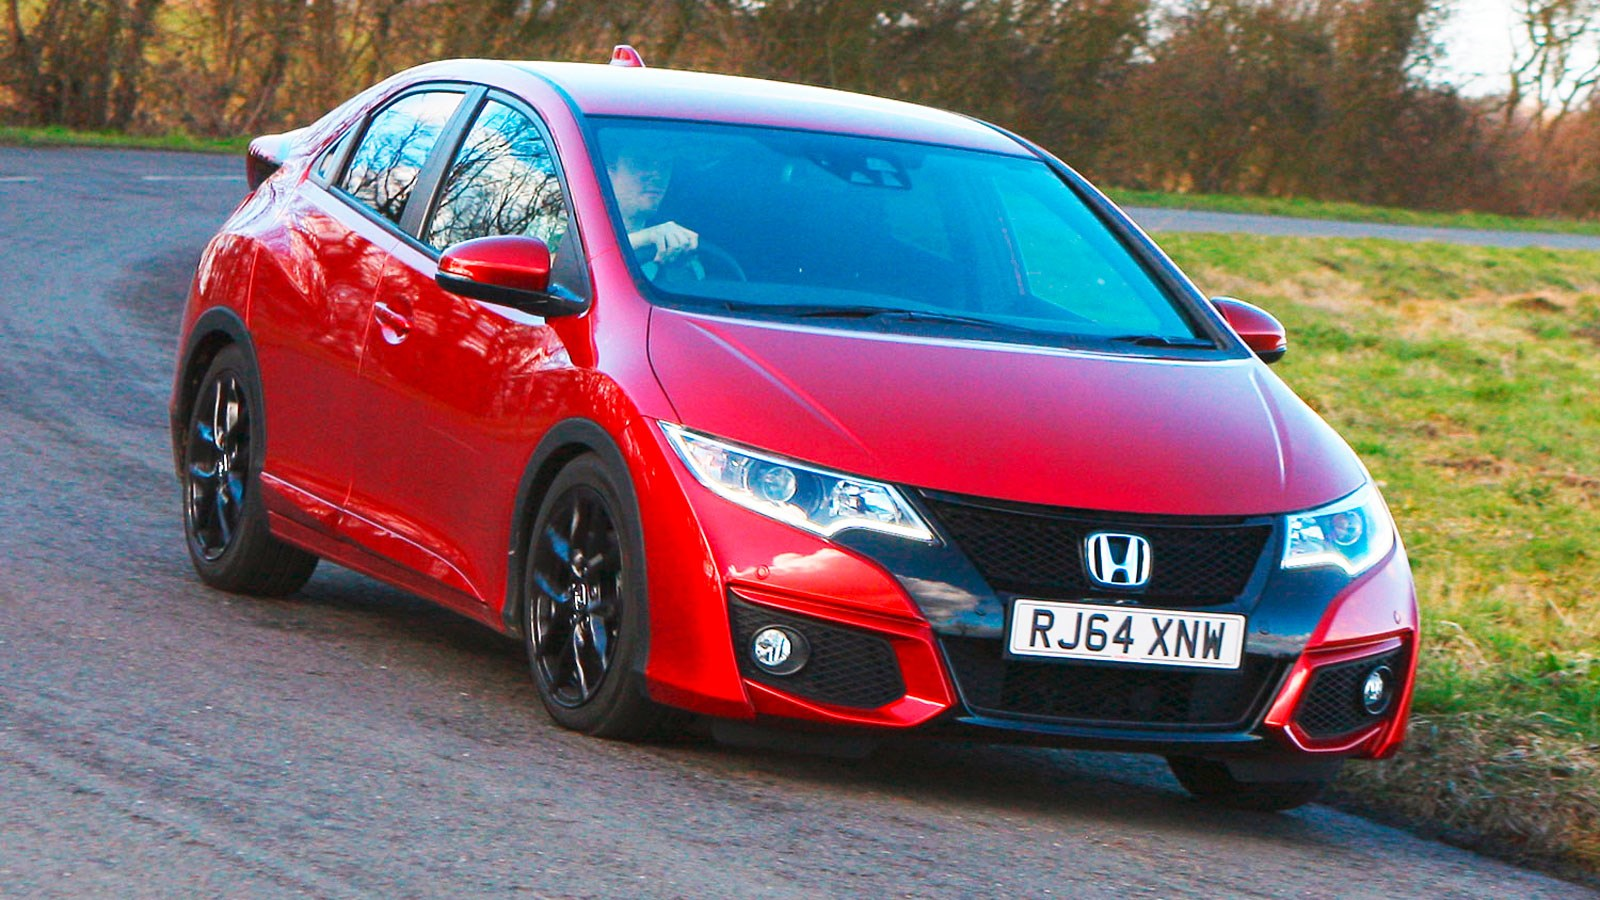 Honda civic sport 1 6 i dtec 2015 review car magazine - 2015 honda civic si interior lights ...